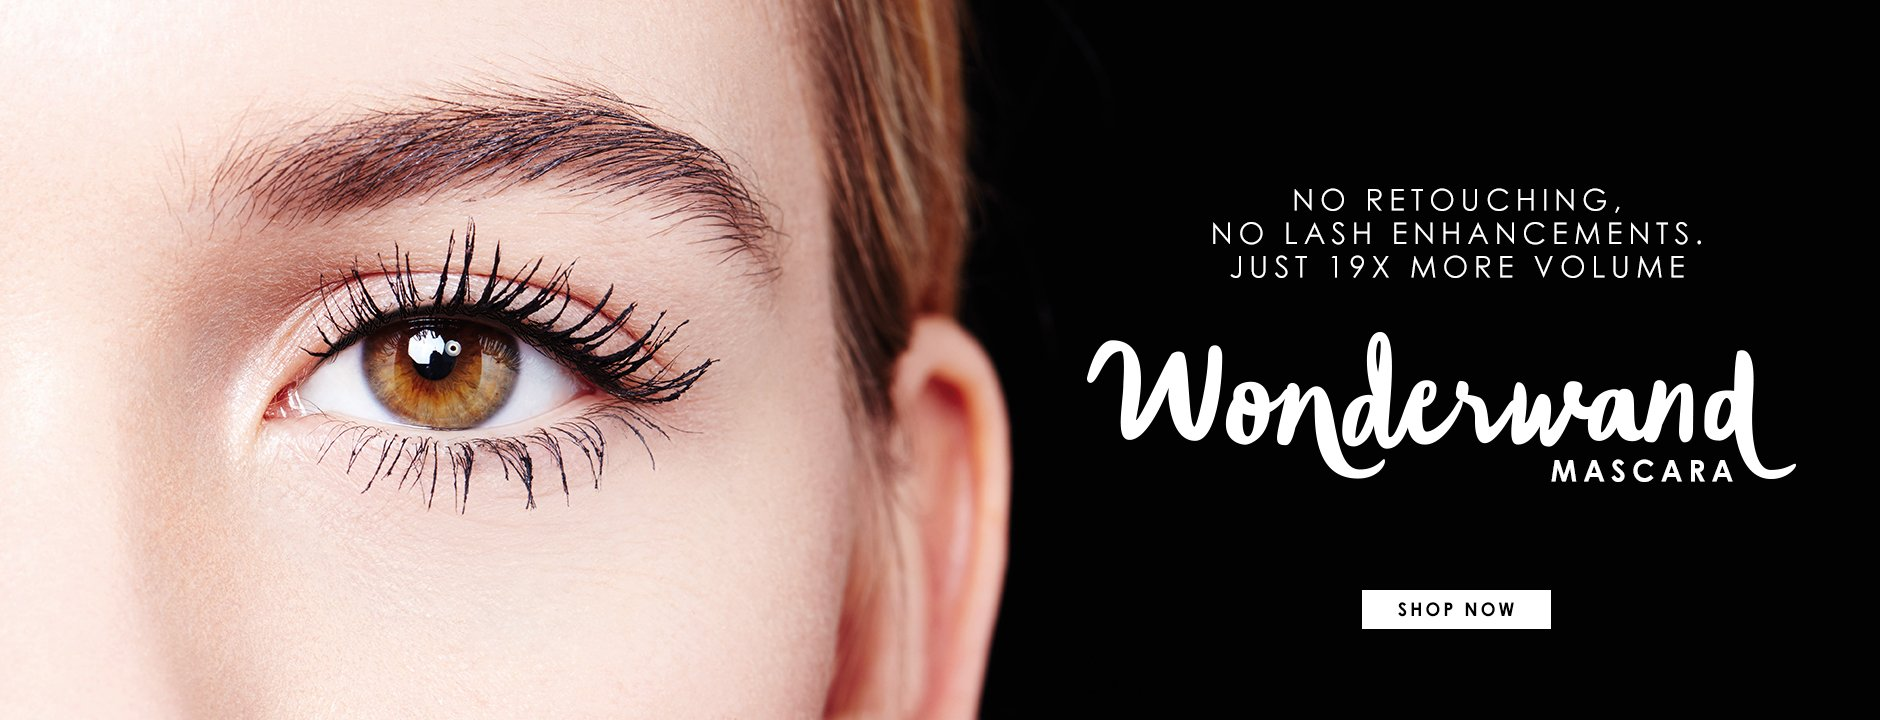 Wonderwand Mascara